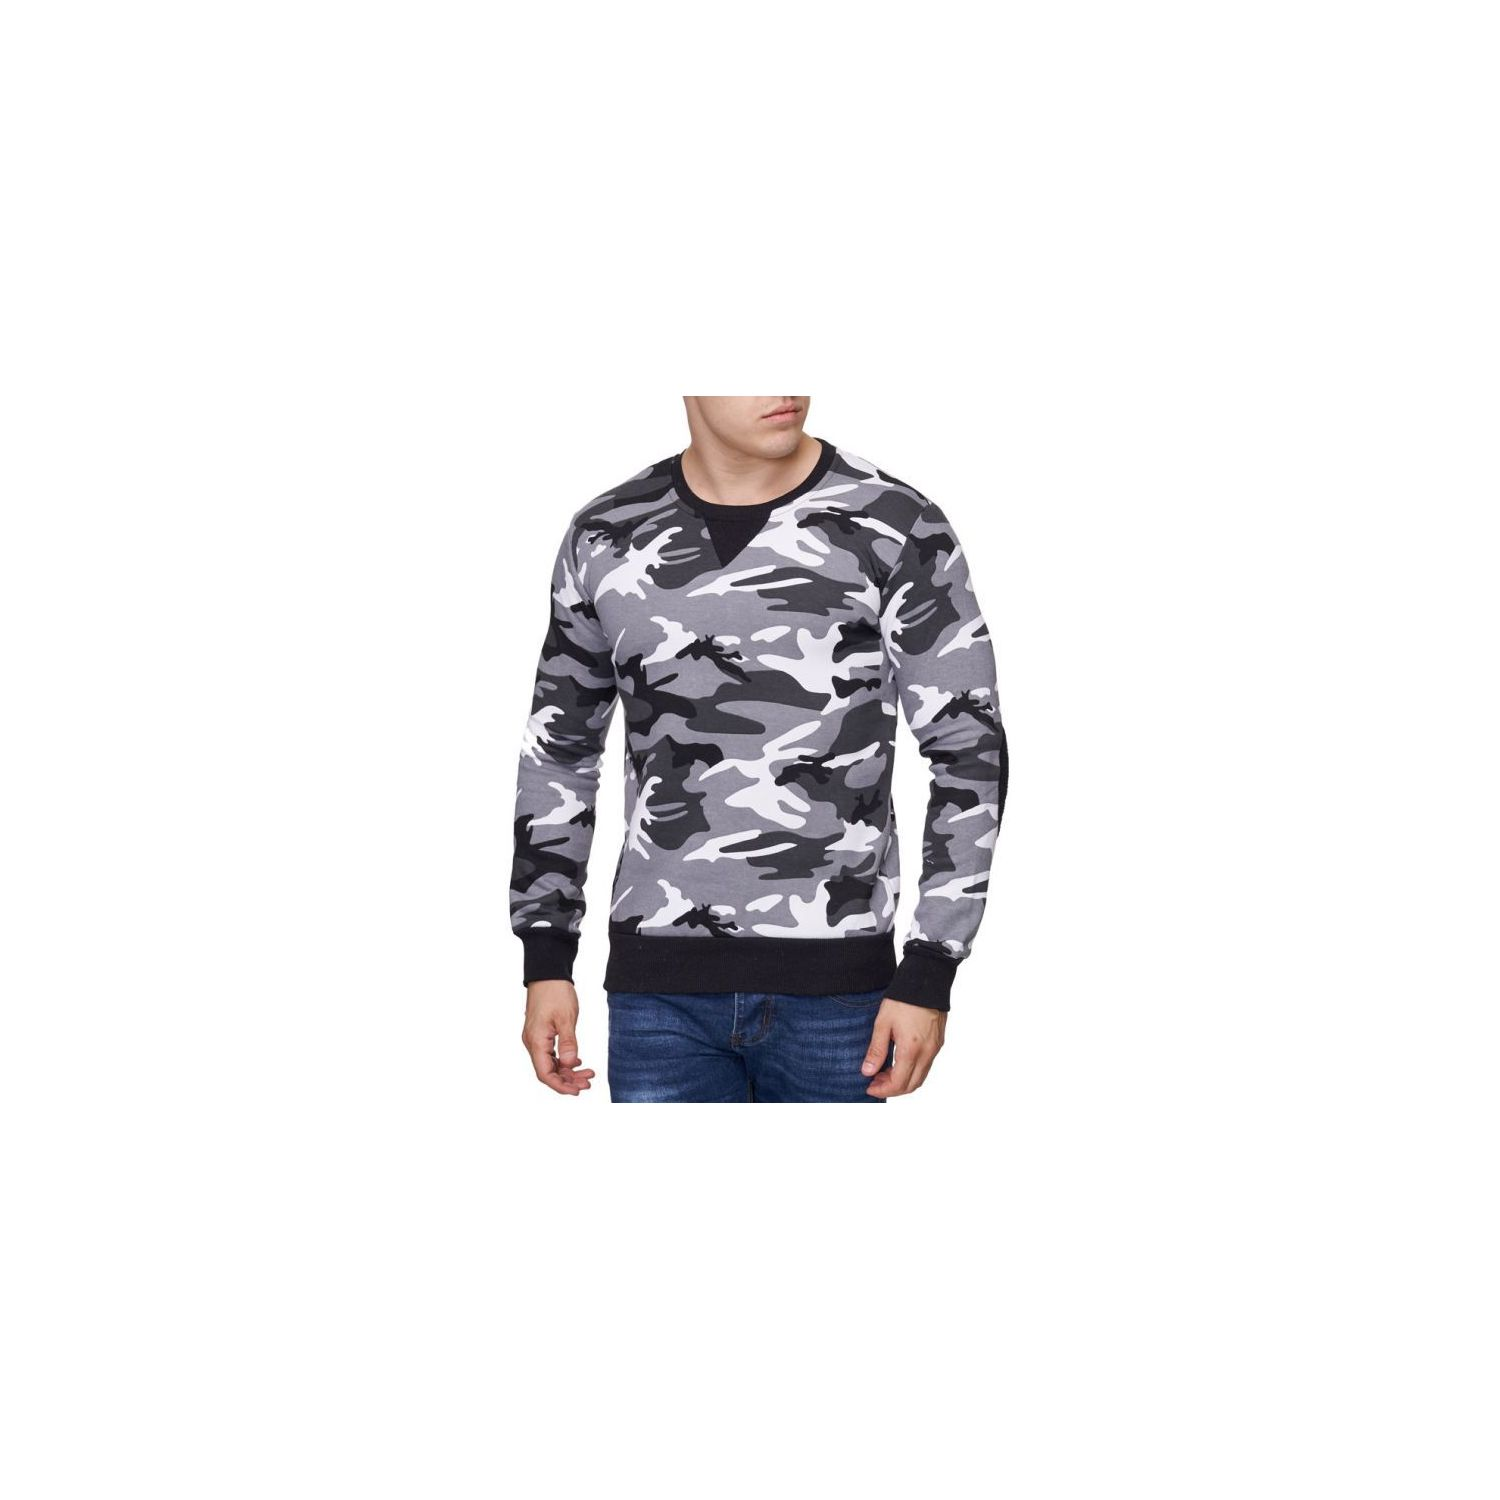 VIOLENTO- Pull camouflage homme gris